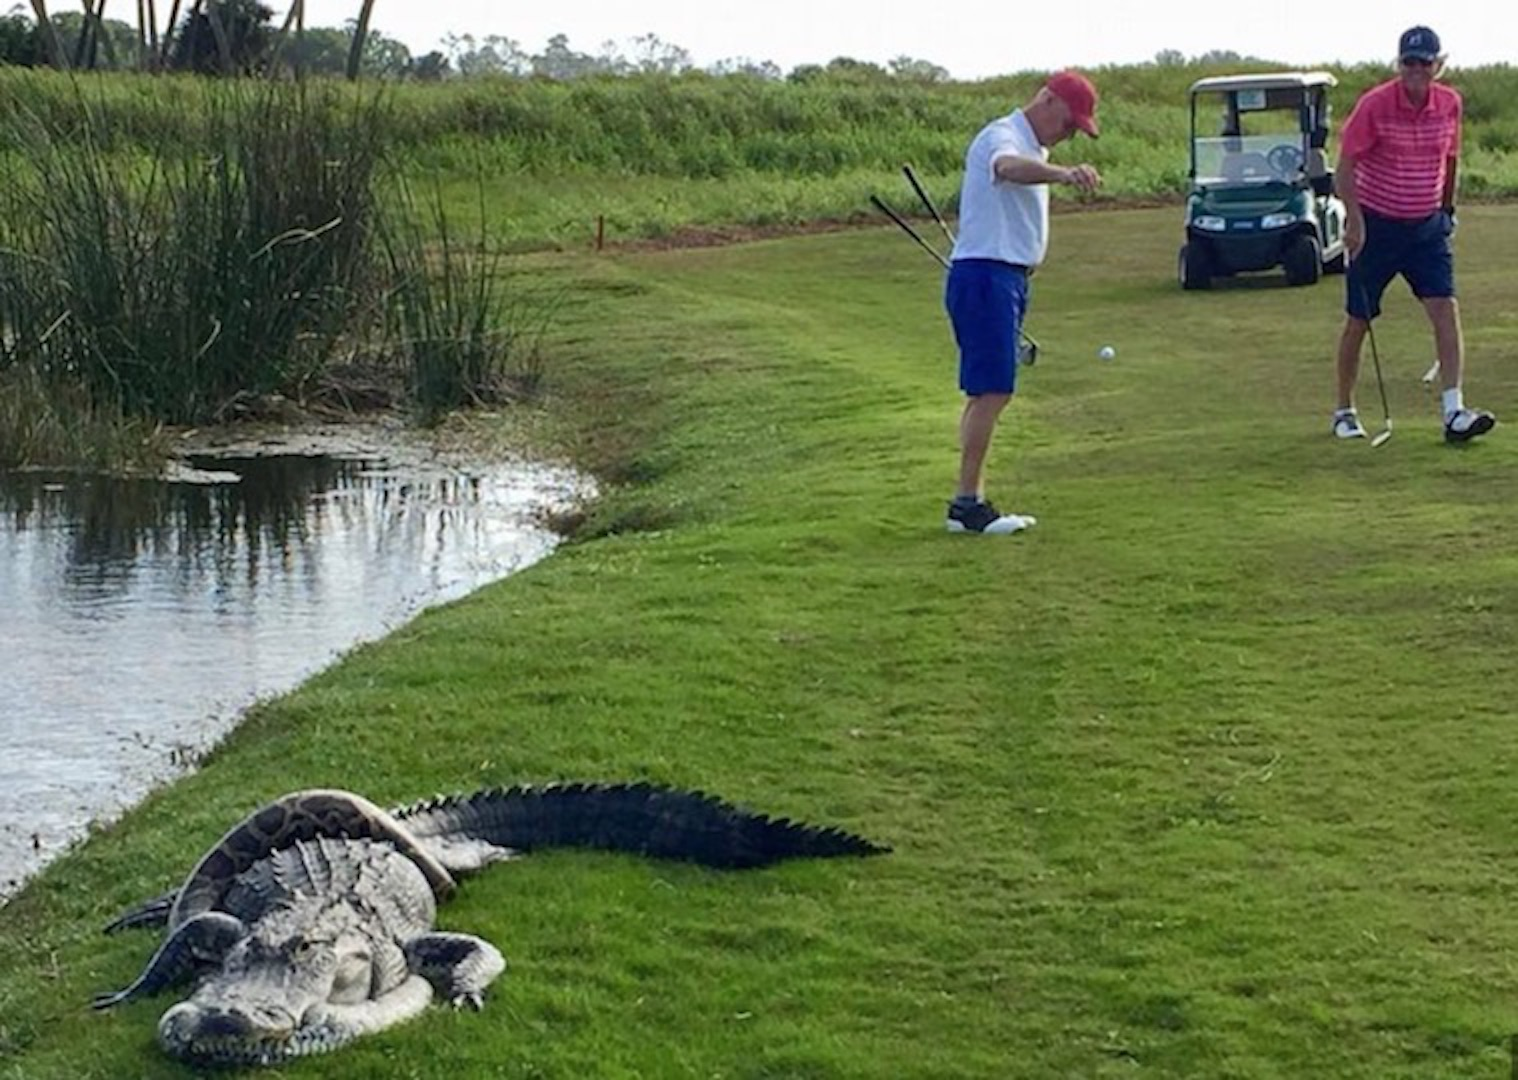 Python and alligator battle it out